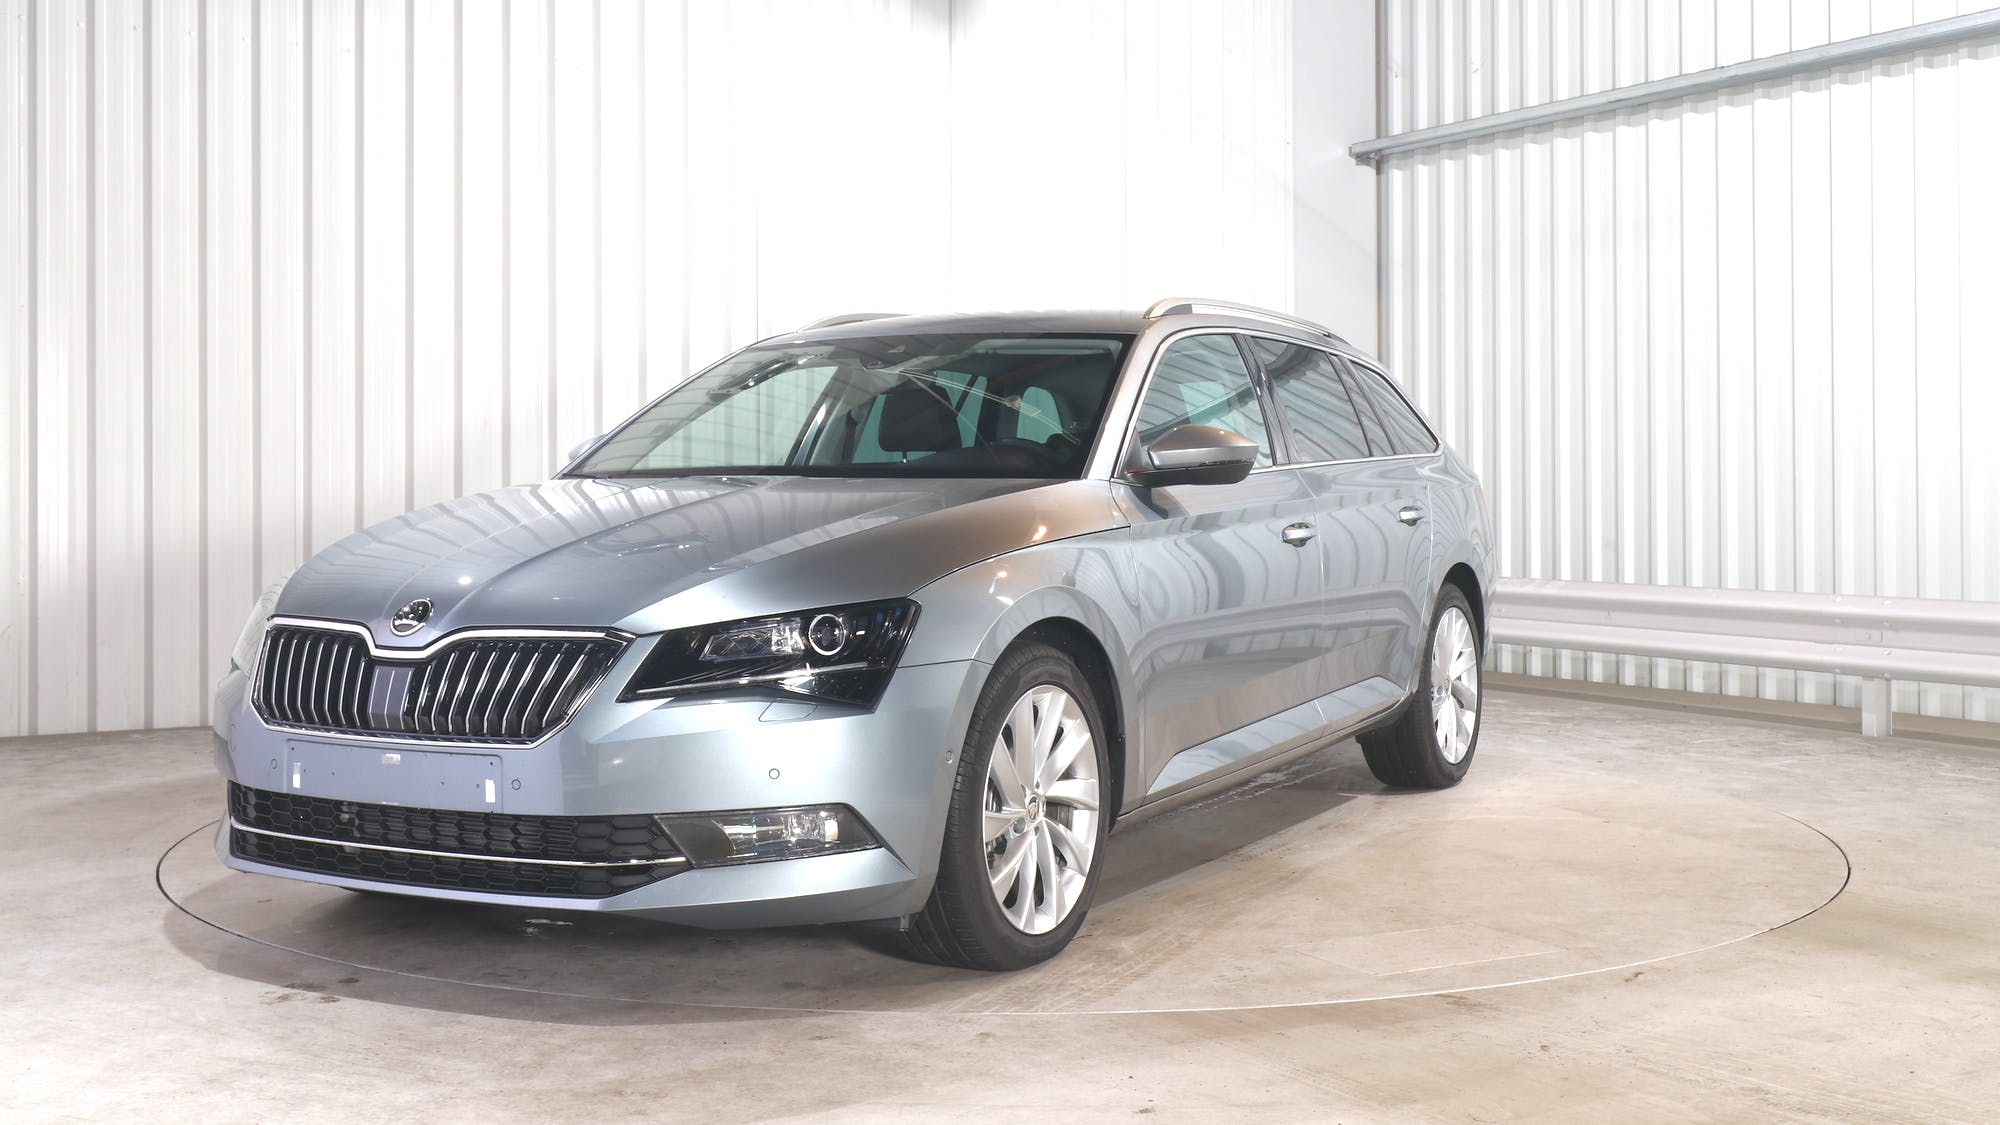 SKODA SUPERB COMBI leasing exterior 0